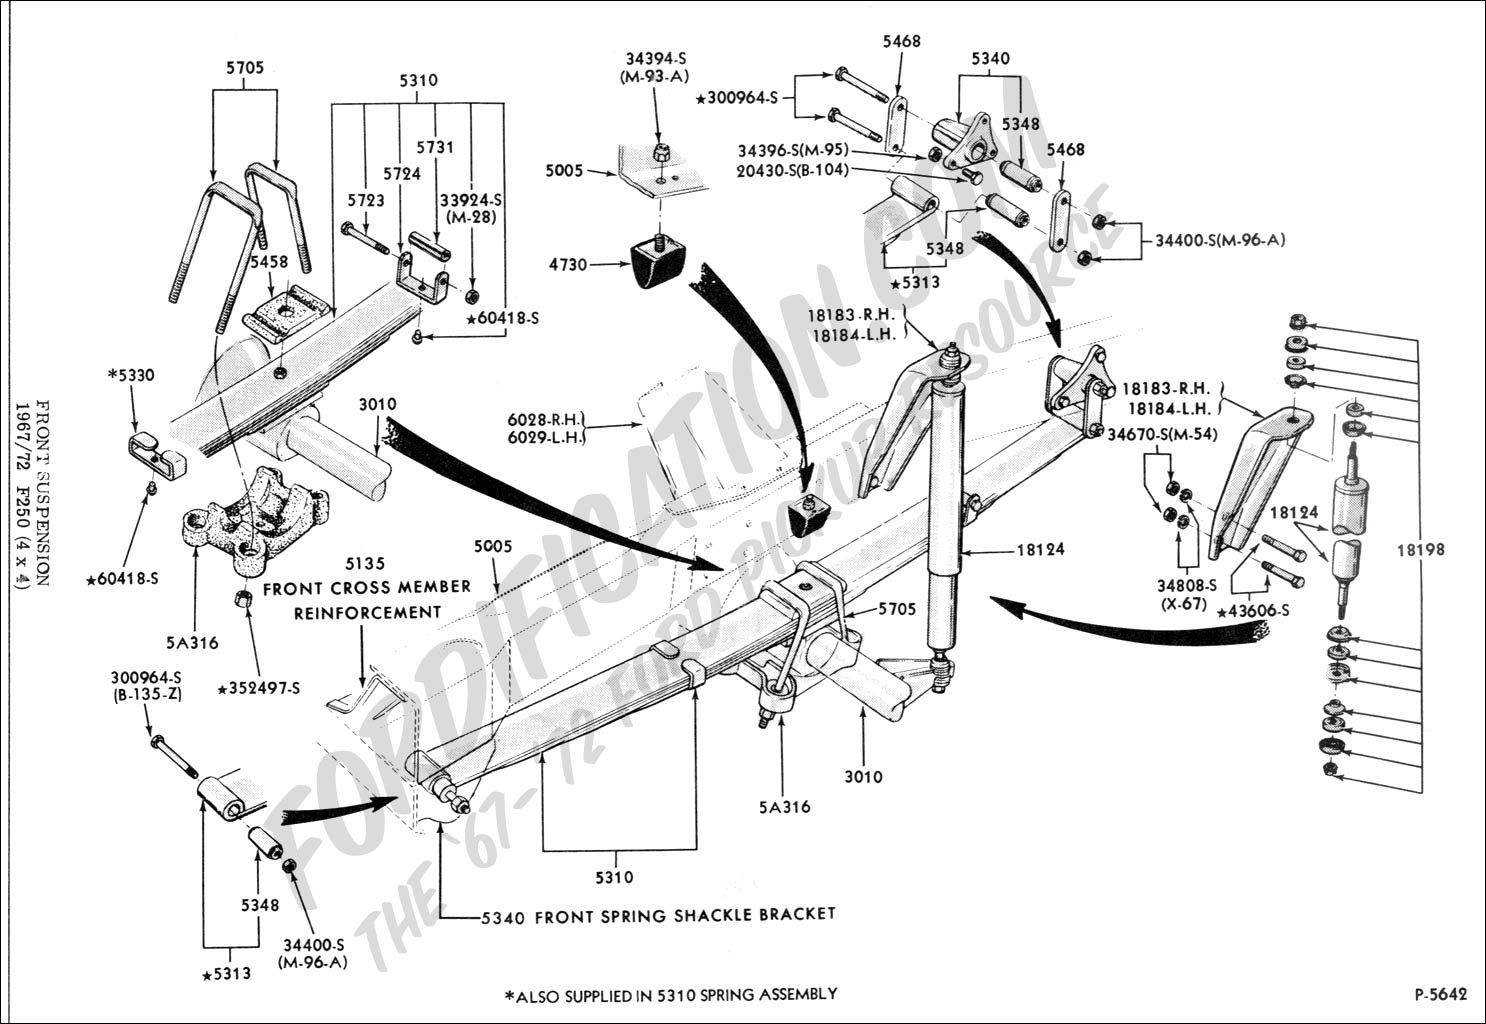 medium resolution of 2003 f250 front suspension diagram wiring diagram used 2003 ford f250 suspension diagram 2003 f250 suspension diagram